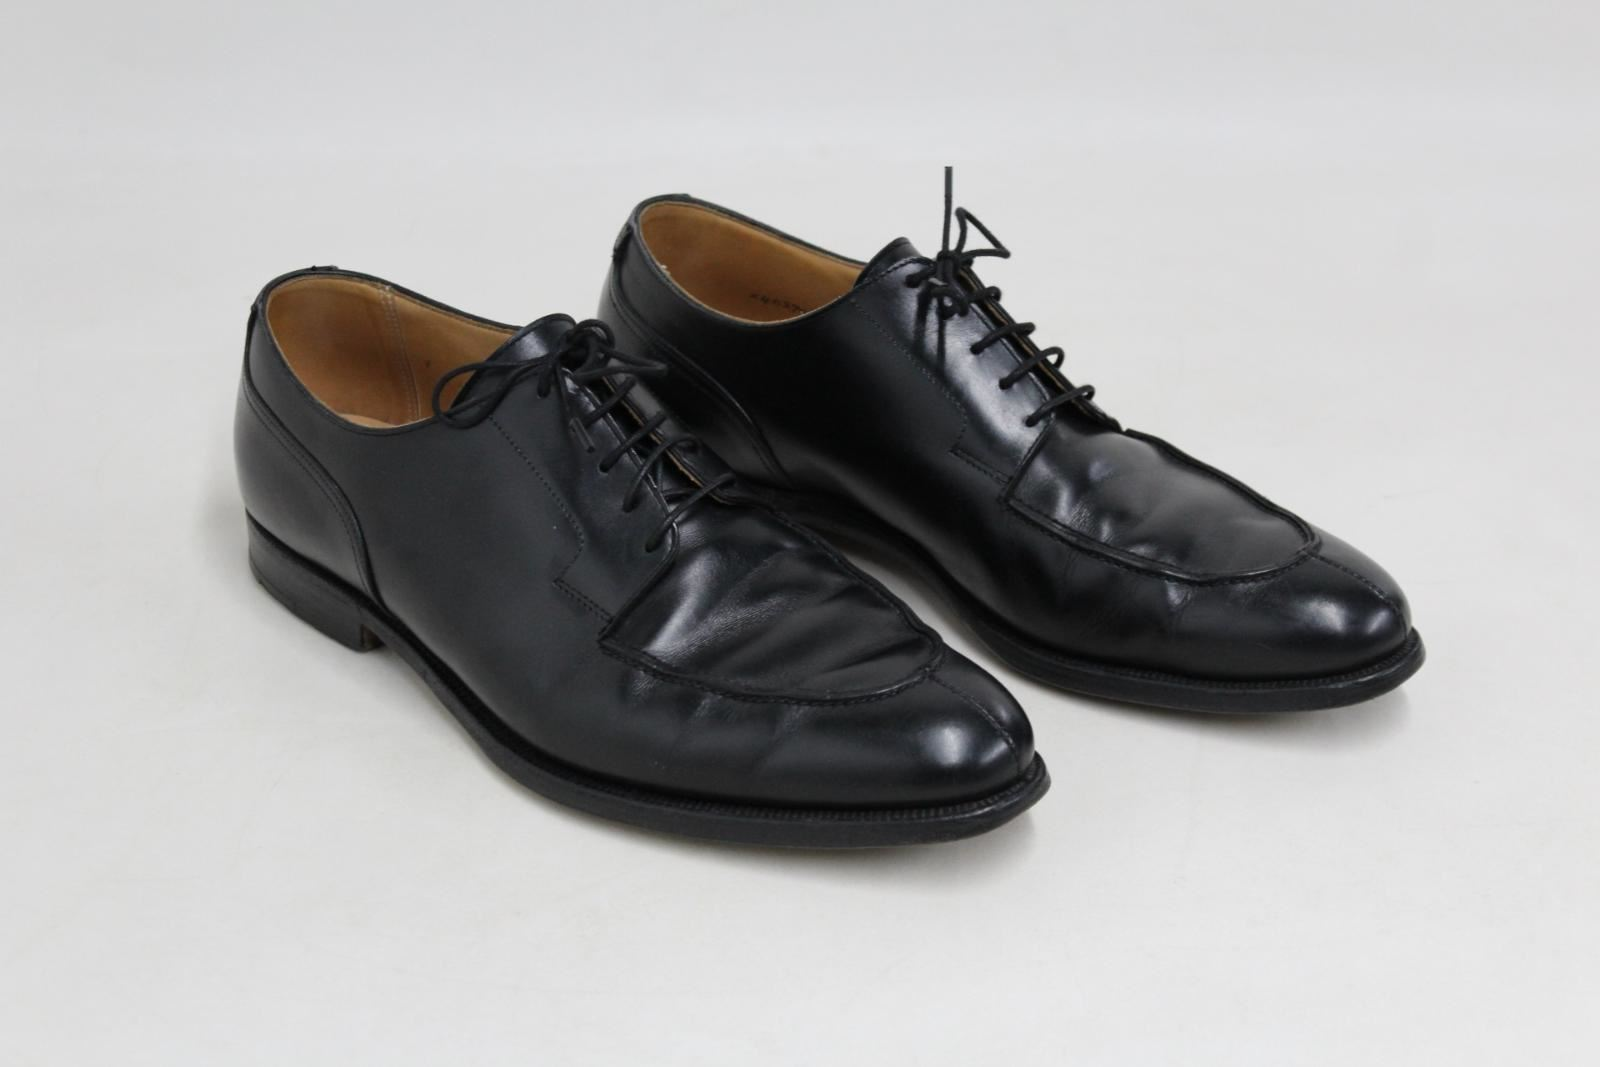 PEAL & & & CO Brooks Bredhers Mens Black Leather Formal Lace-up shoes UK9.5 EU43 520a6c